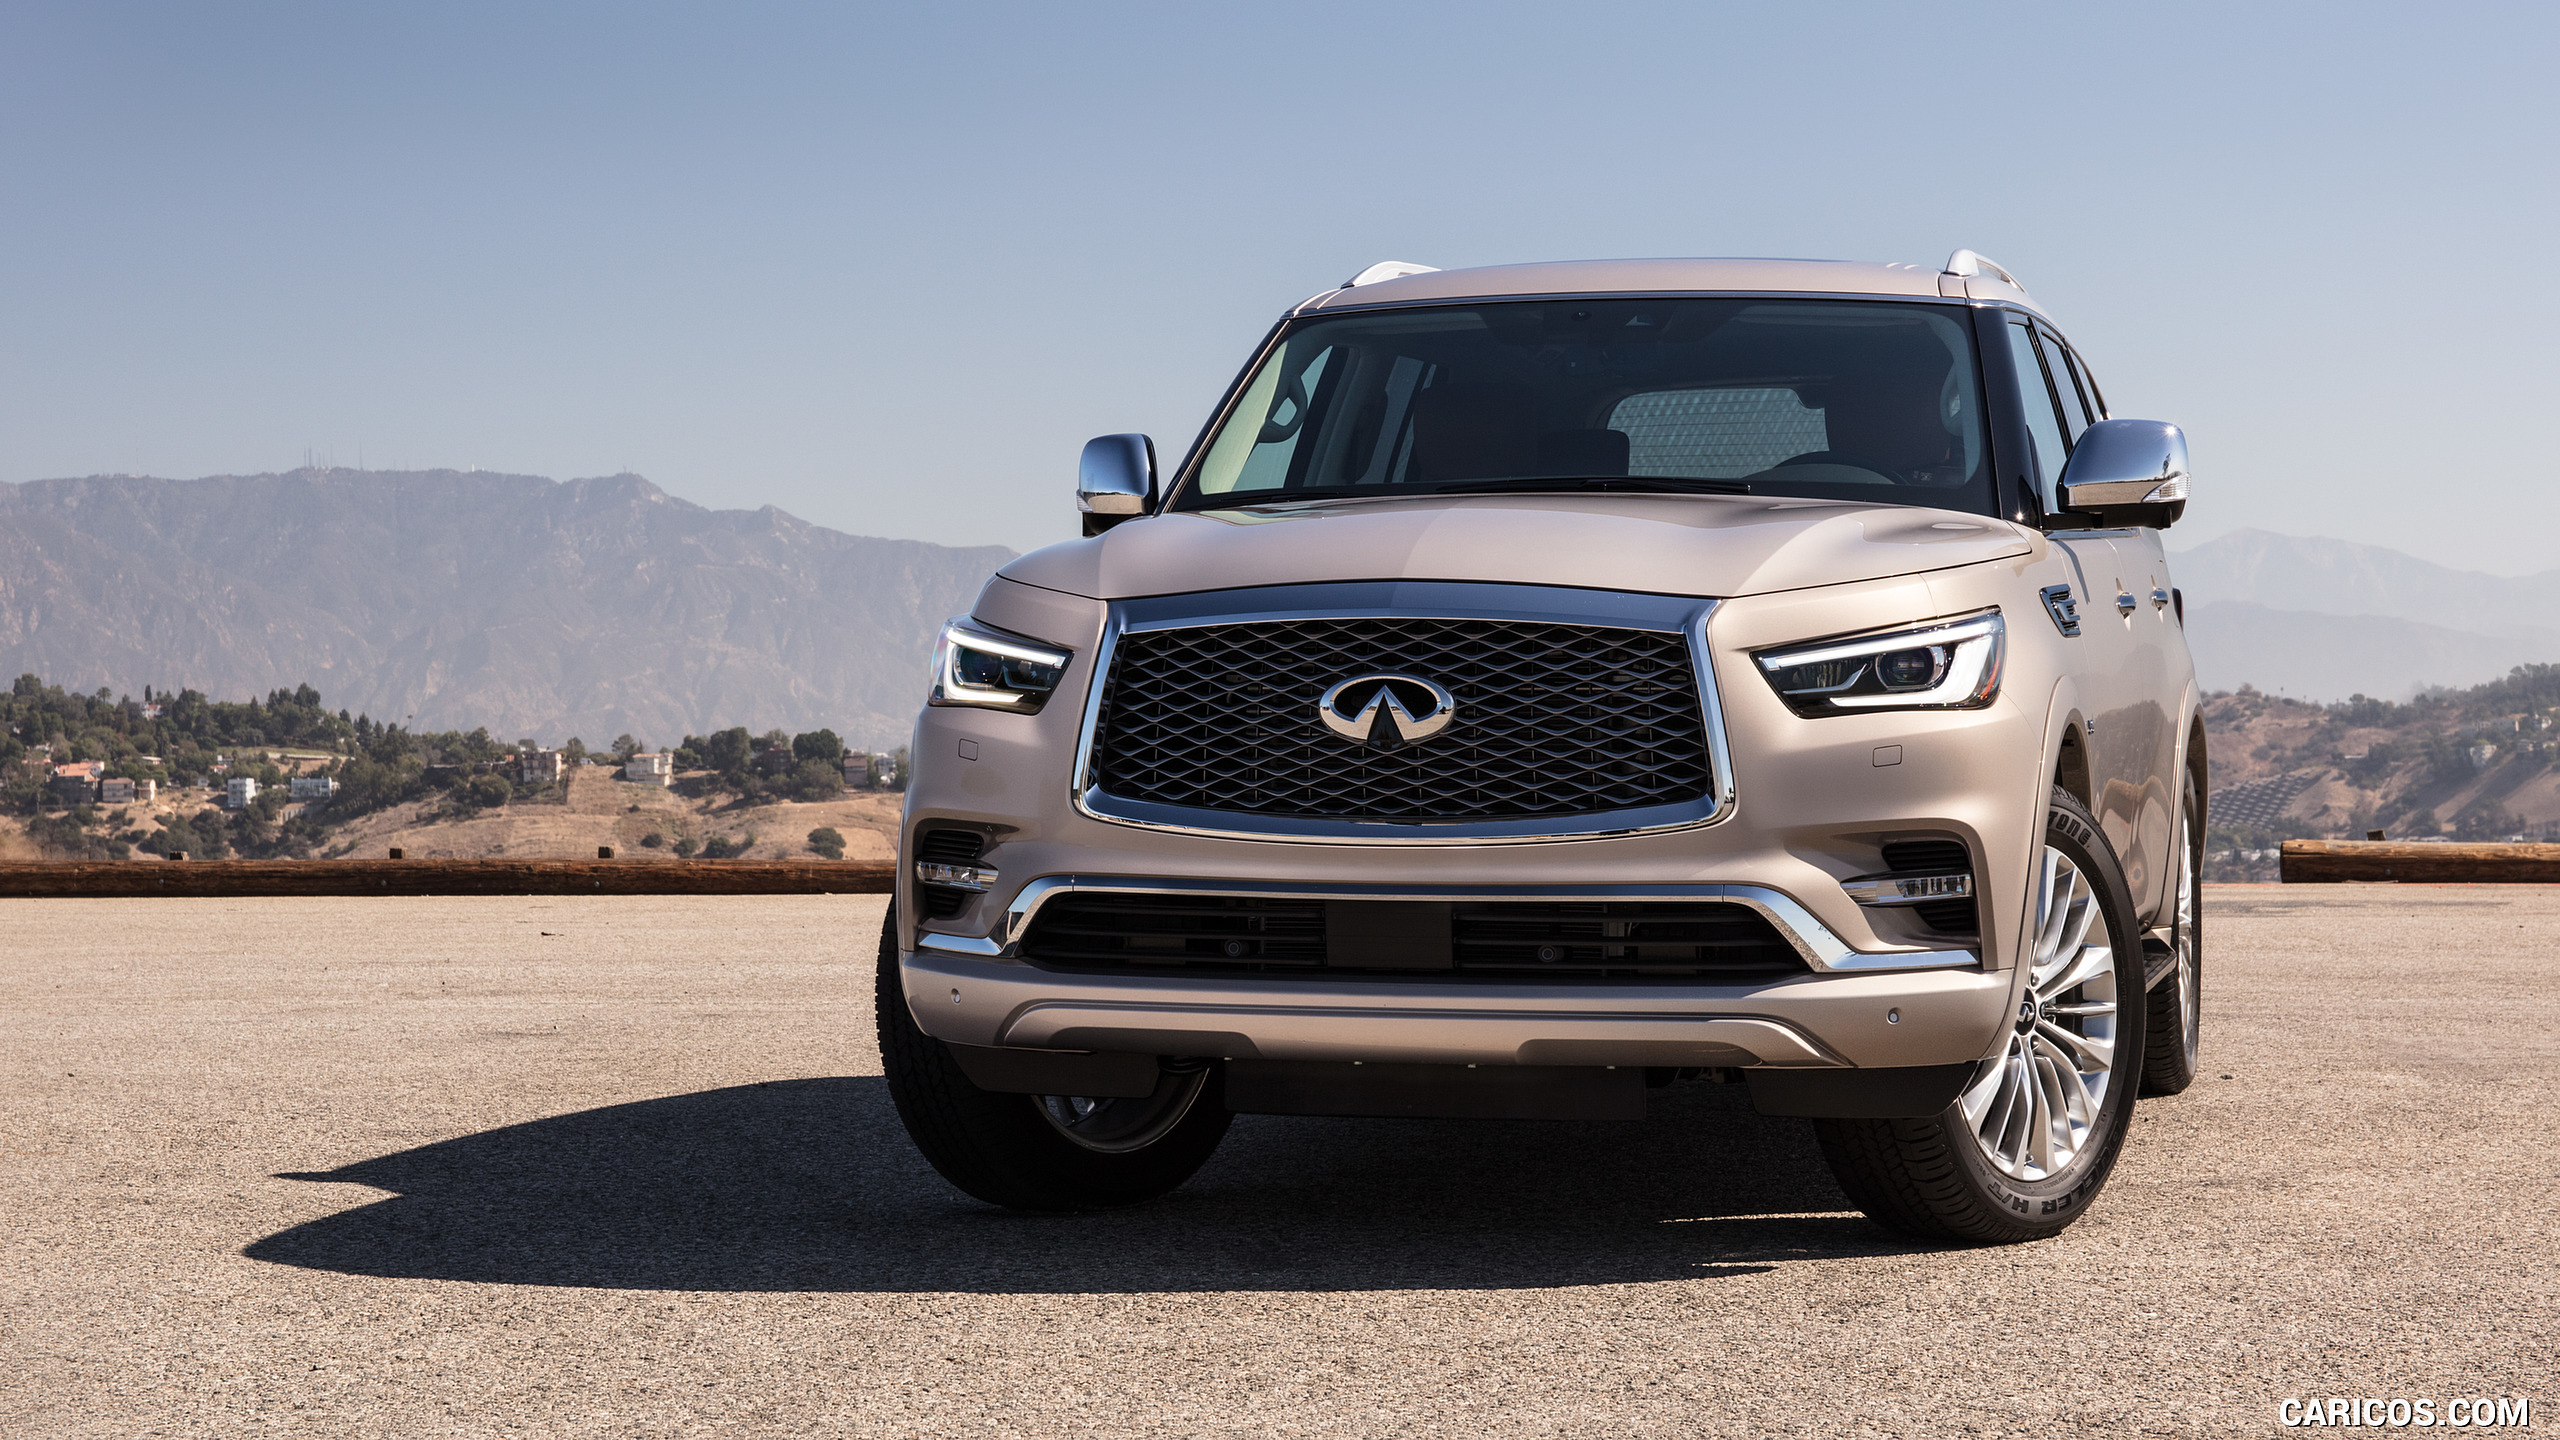 2560x1440 - Infiniti QX80 Wallpapers 2